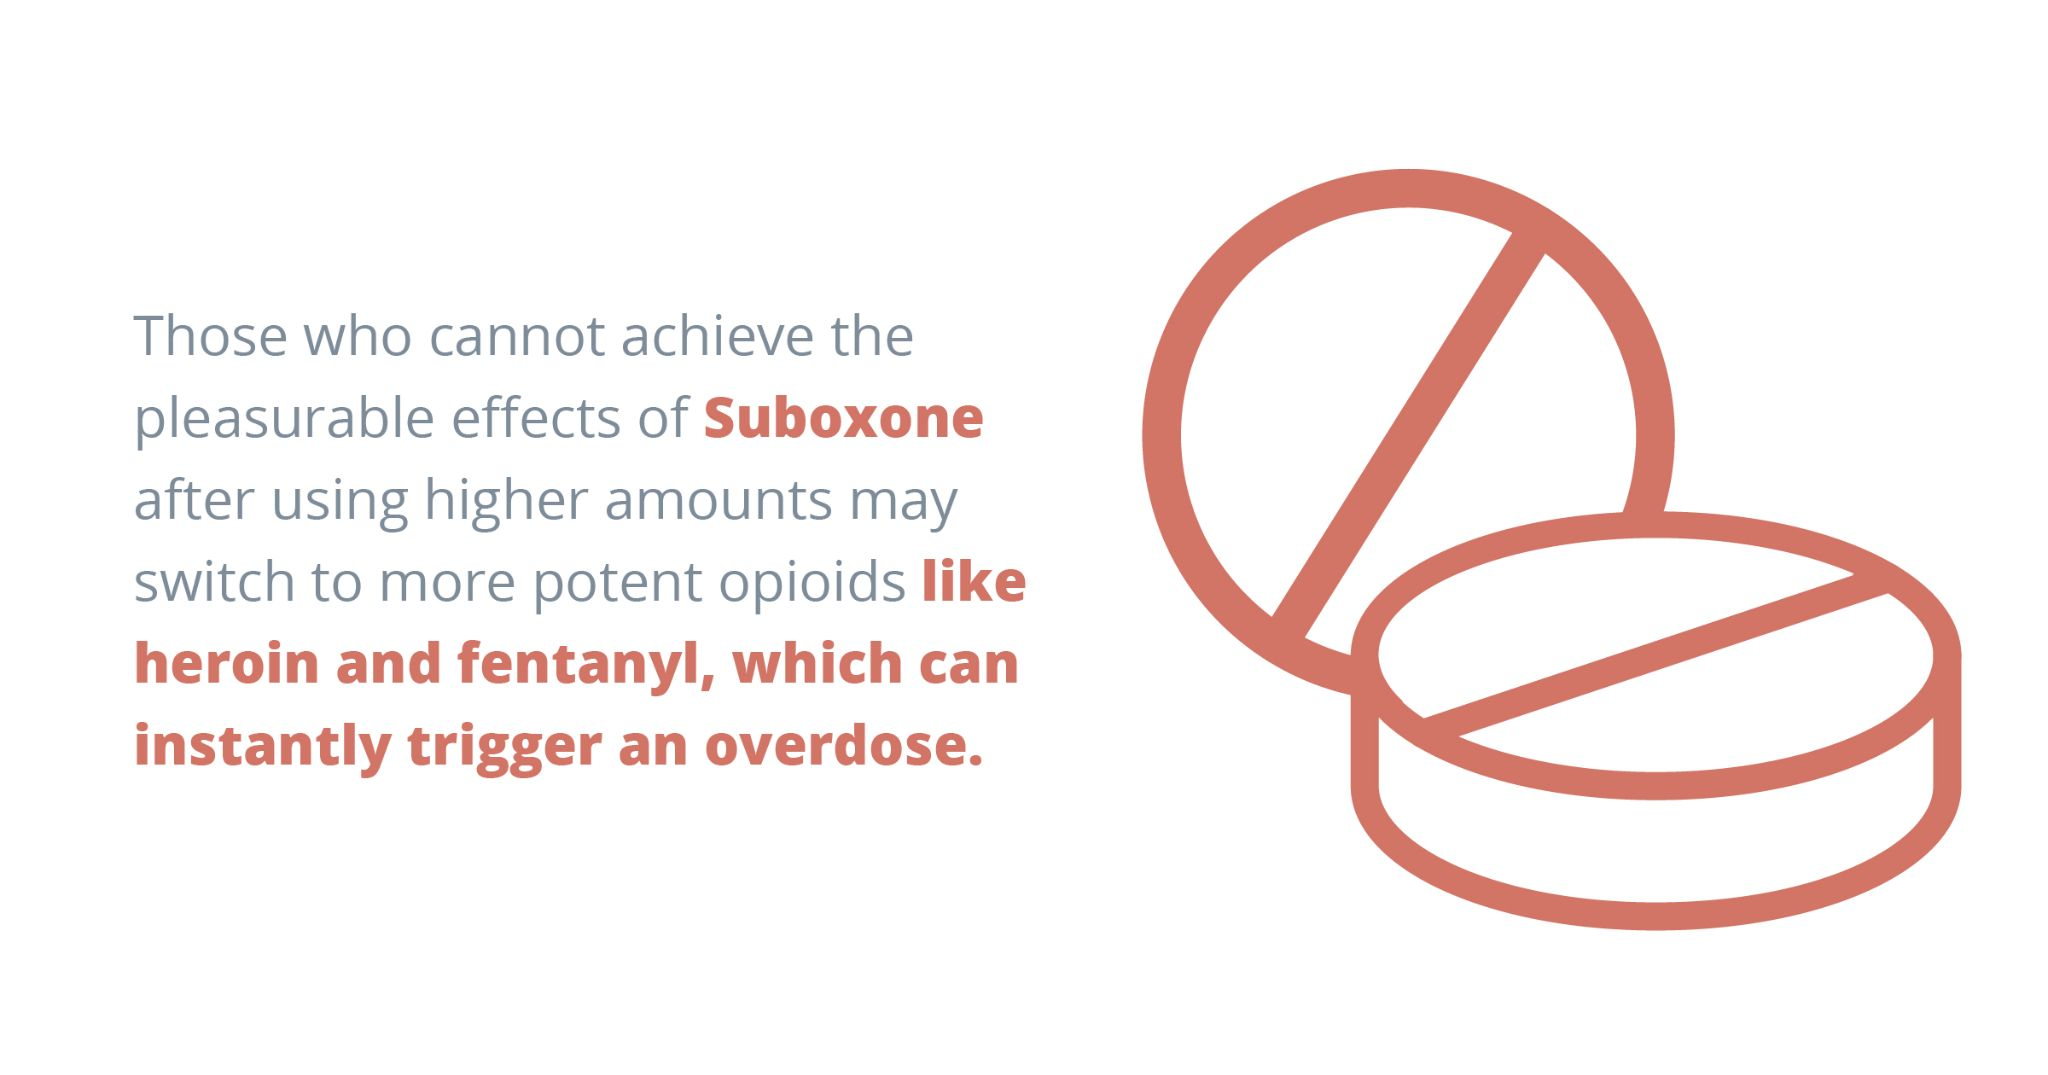 Those who cannot achieve the pleasurable effects of suboxone after using hgiher amounts may switch to more potent opioids like heroin and fentanyl, which can instantly trigger an overdose